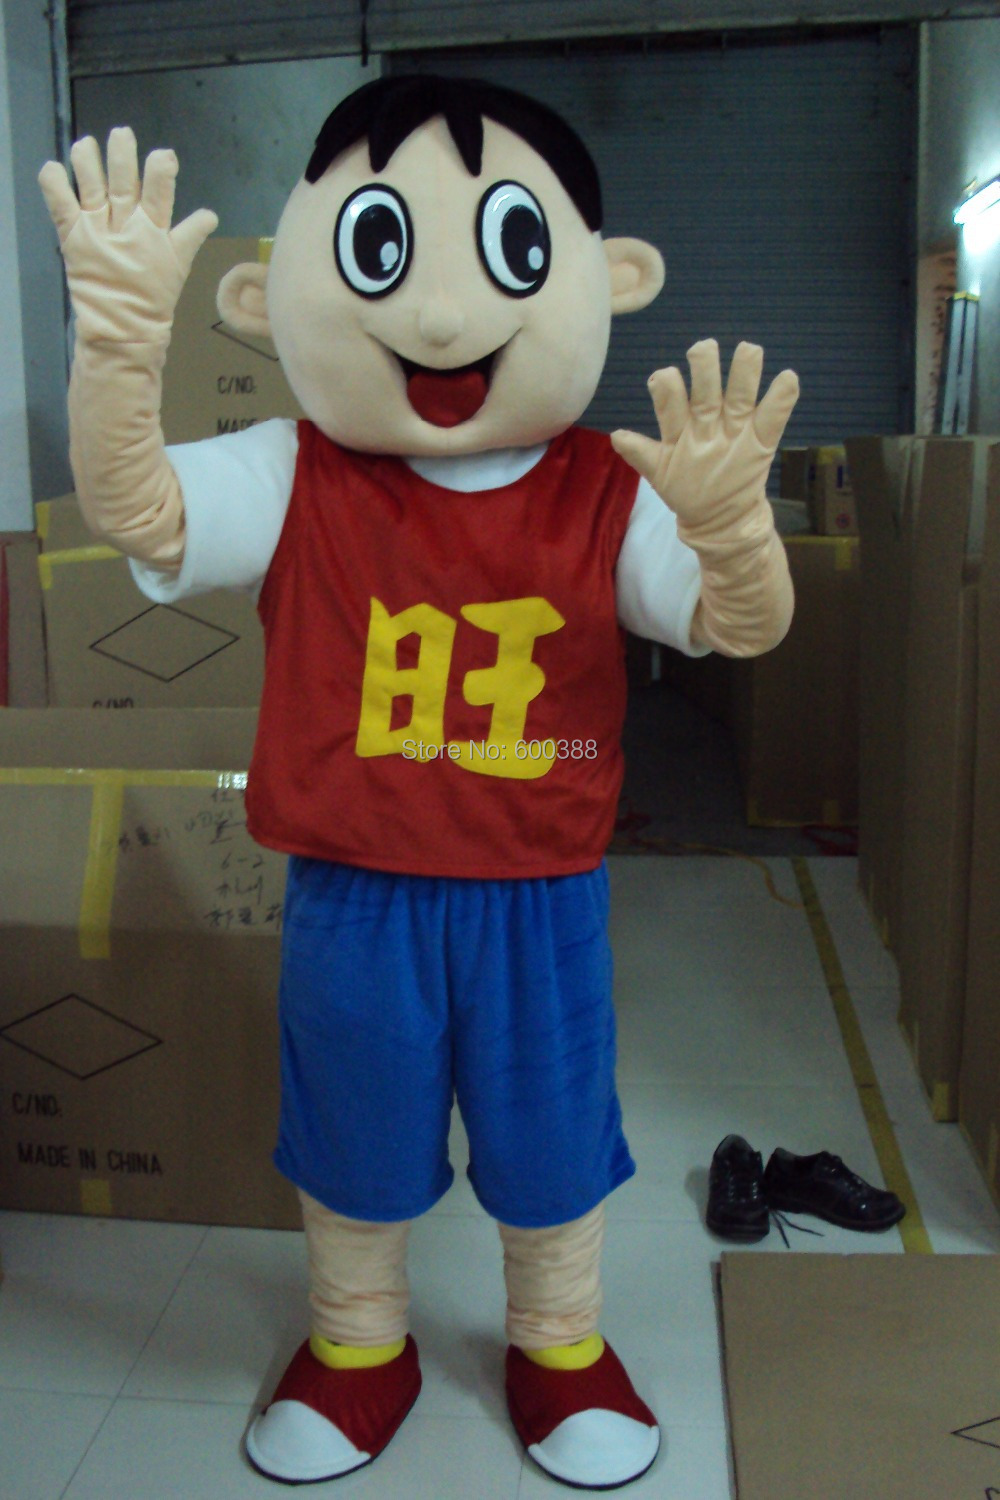 New chinese boy mascot costume top fancy dress christmas gift character kids party costume(China (Mainland))